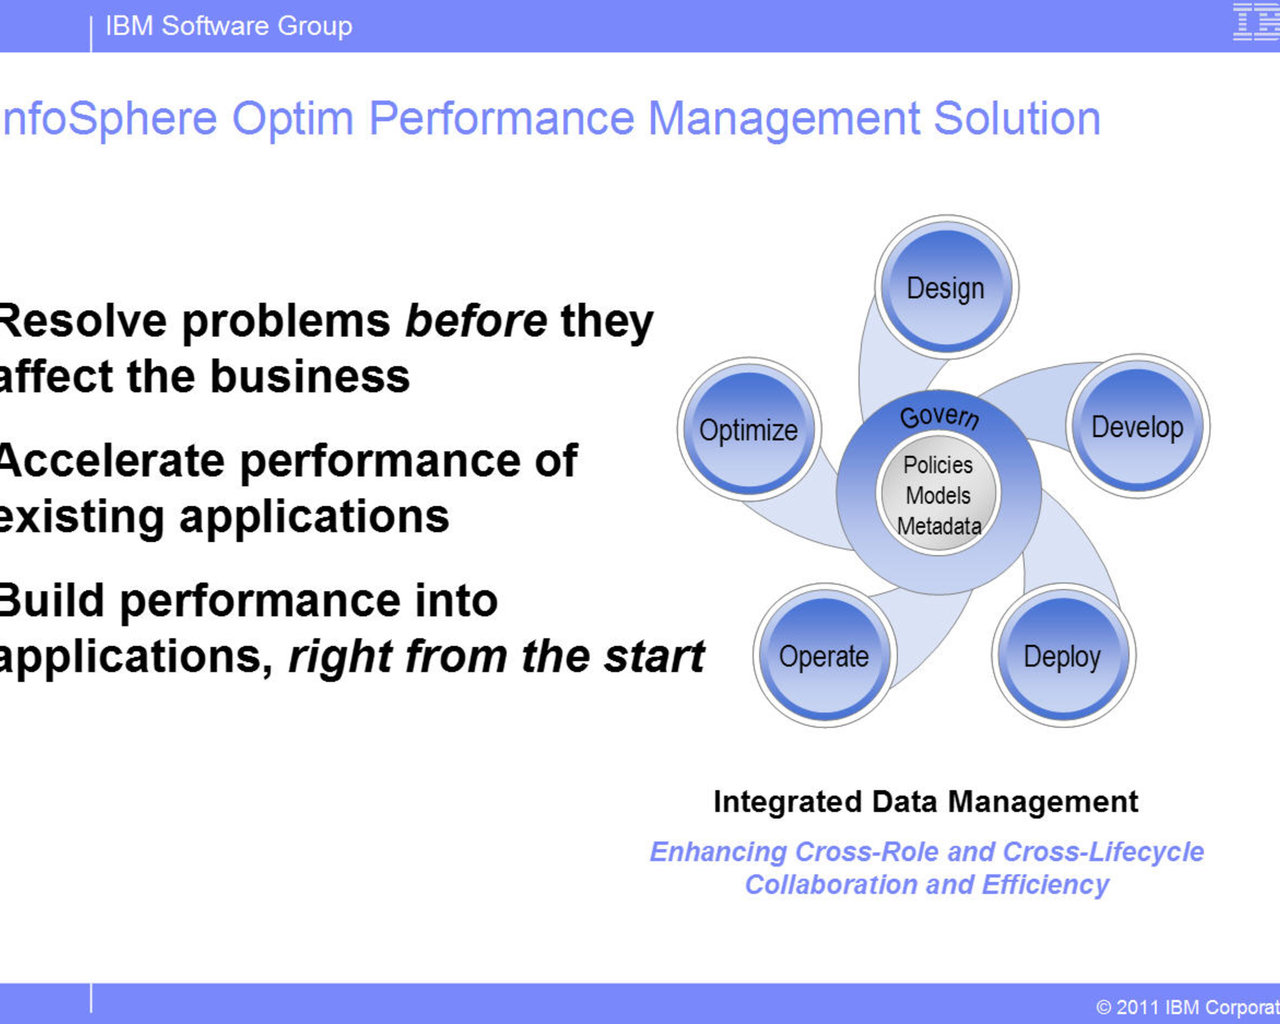 Manage DB2 for z/OS application performance using InfoSphere Optim